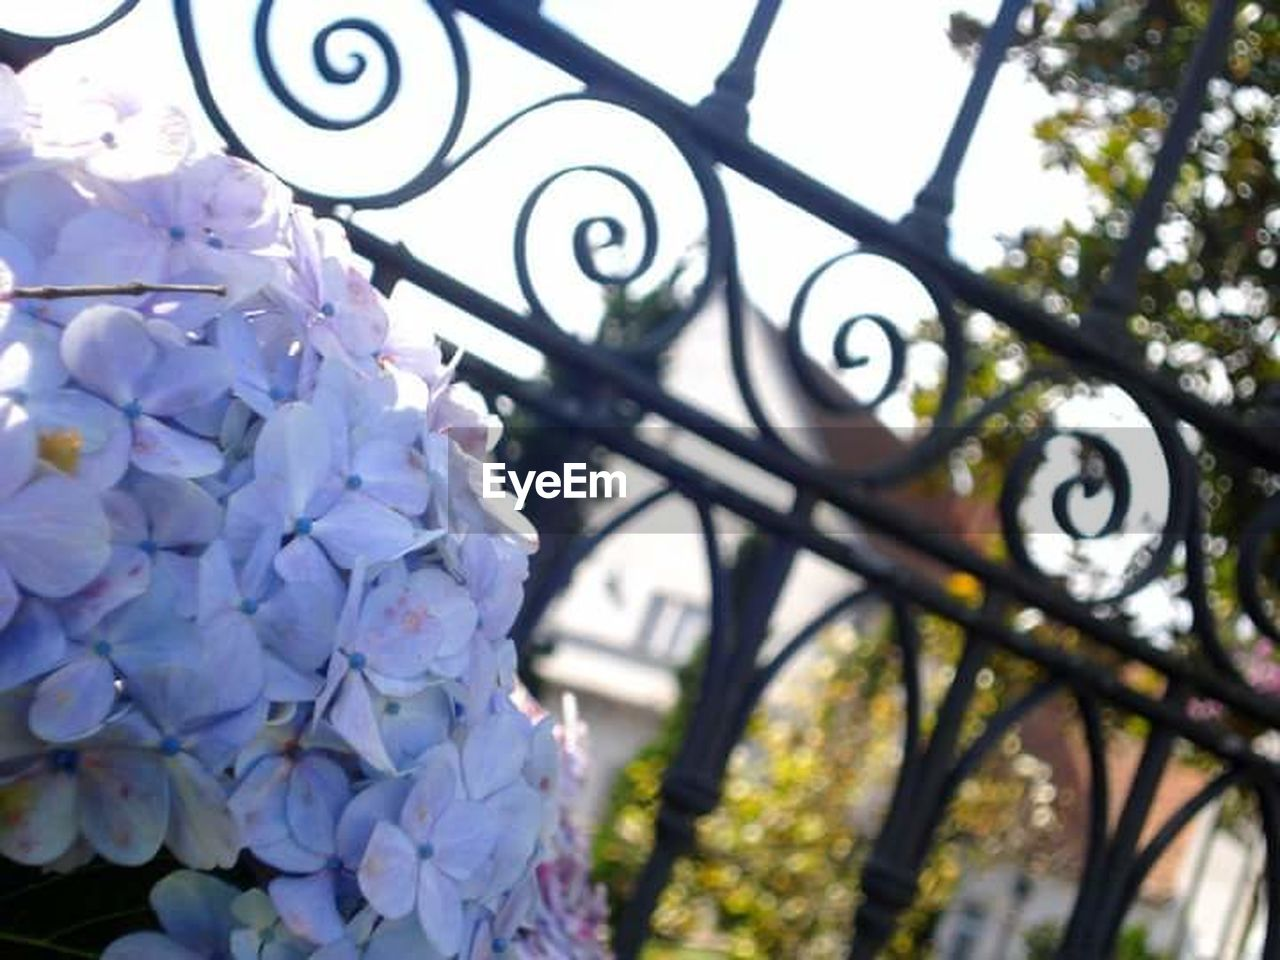 day, close-up, no people, outdoors, flower, tree, clock